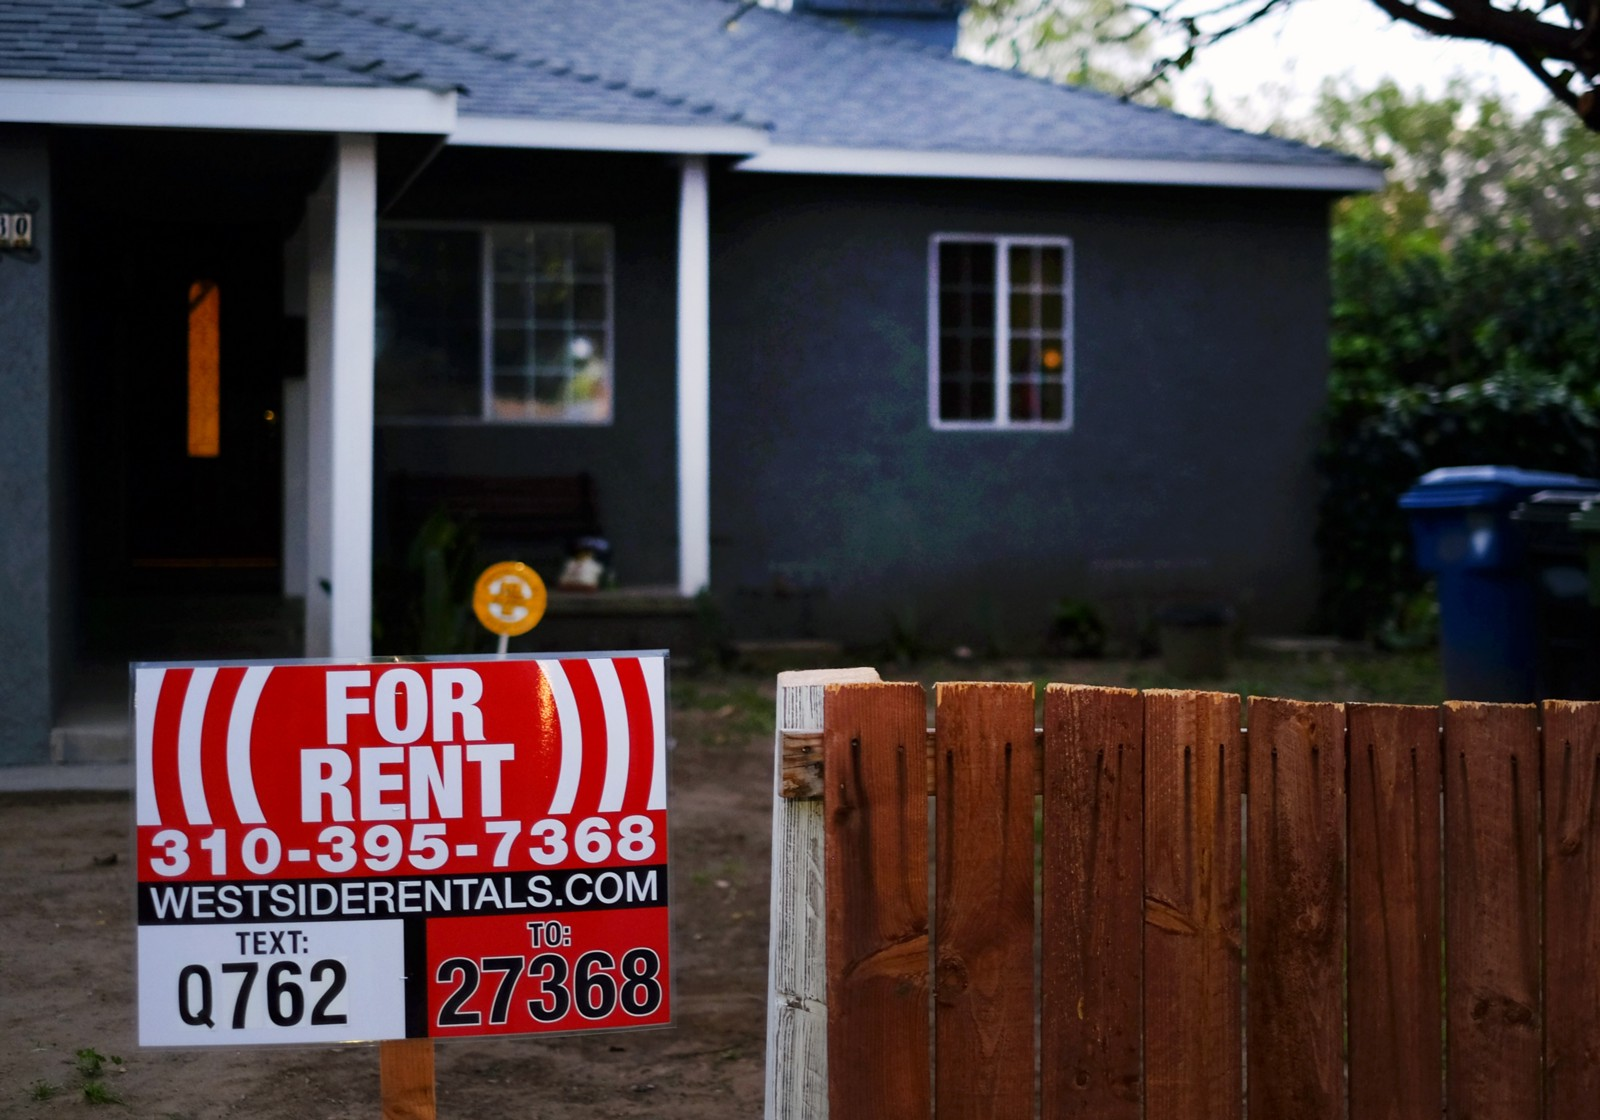 Americans Are Paying Way Too Much On Rent, And It's Only Going To Get Worse